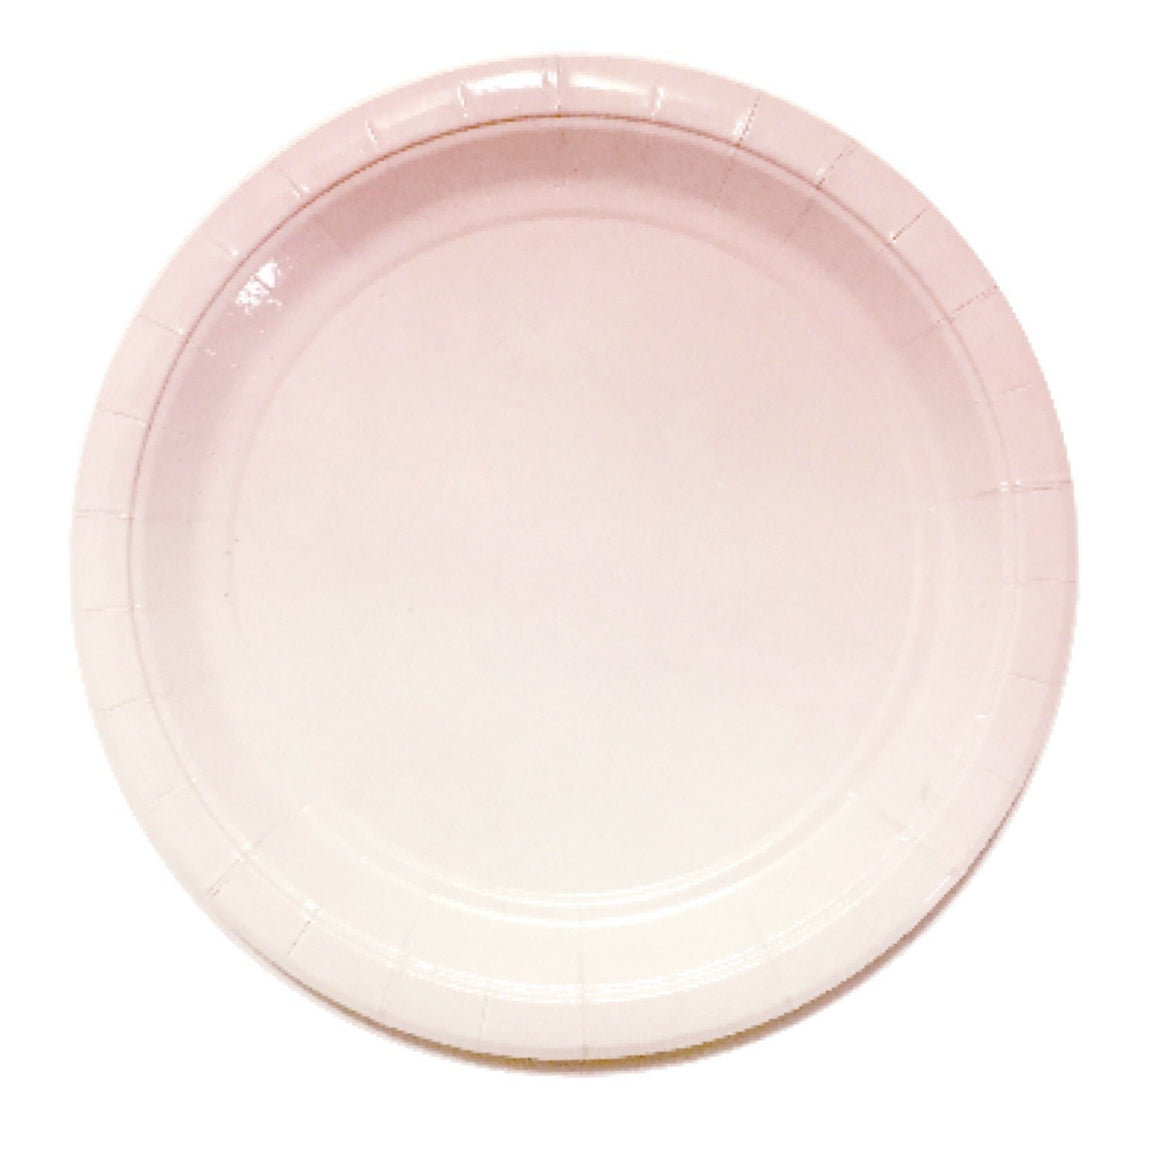 PLATES - LARGE PINK OMBRE